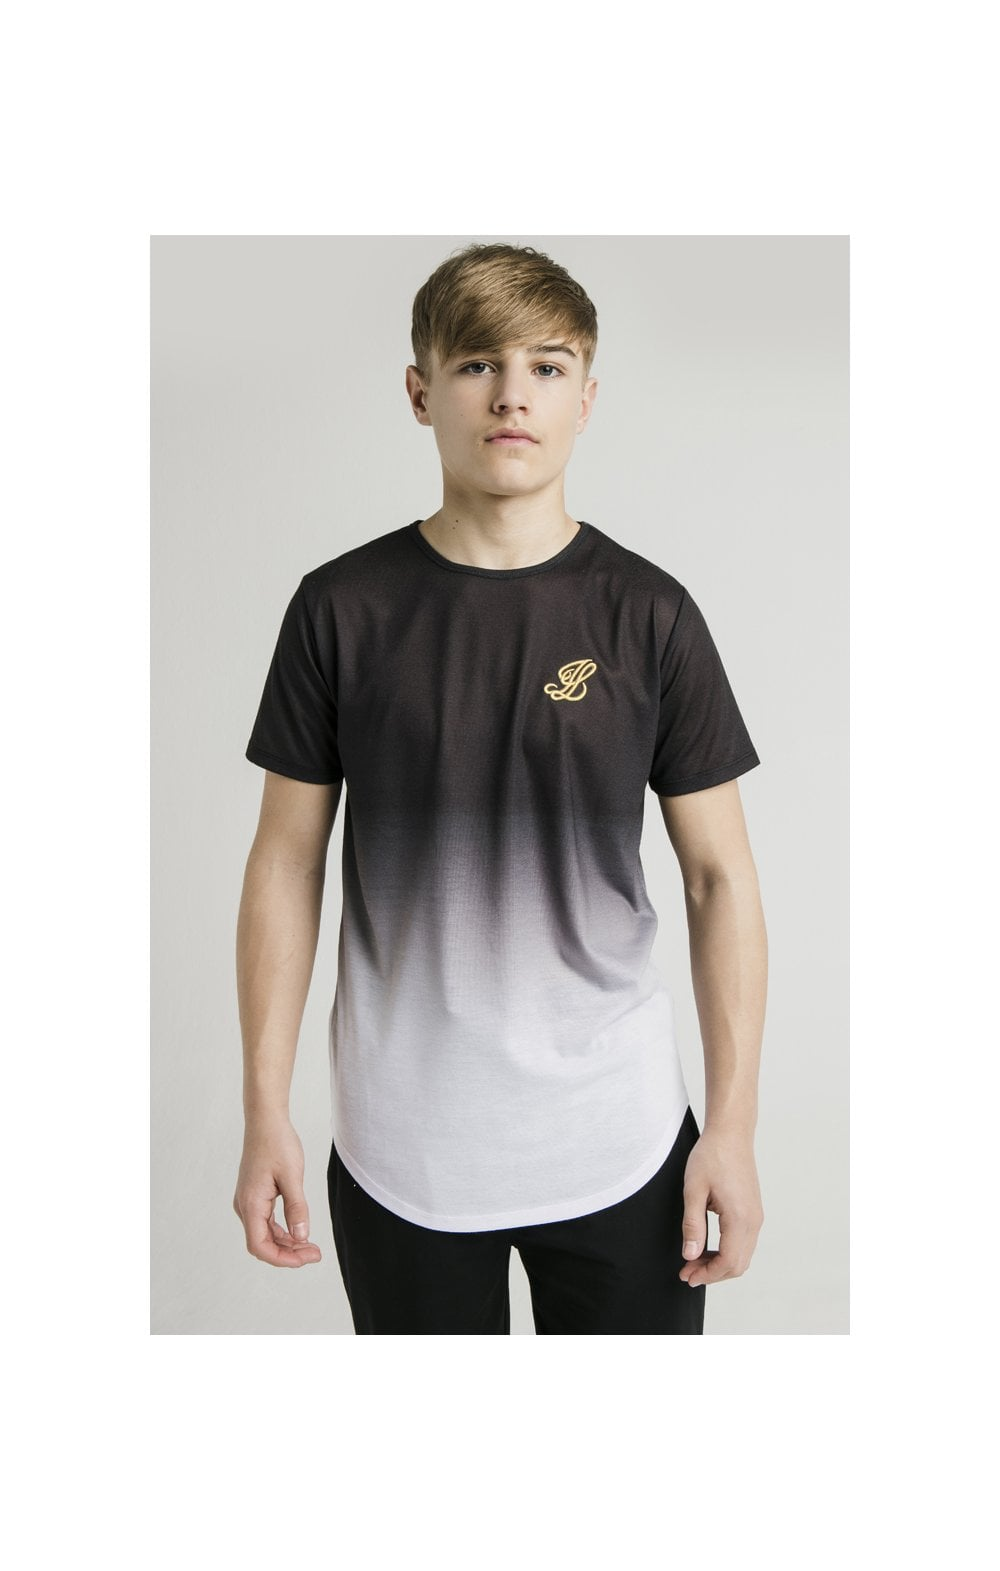 Load image into Gallery viewer, Illusive London S/S Fade Tee - Black & White (1)